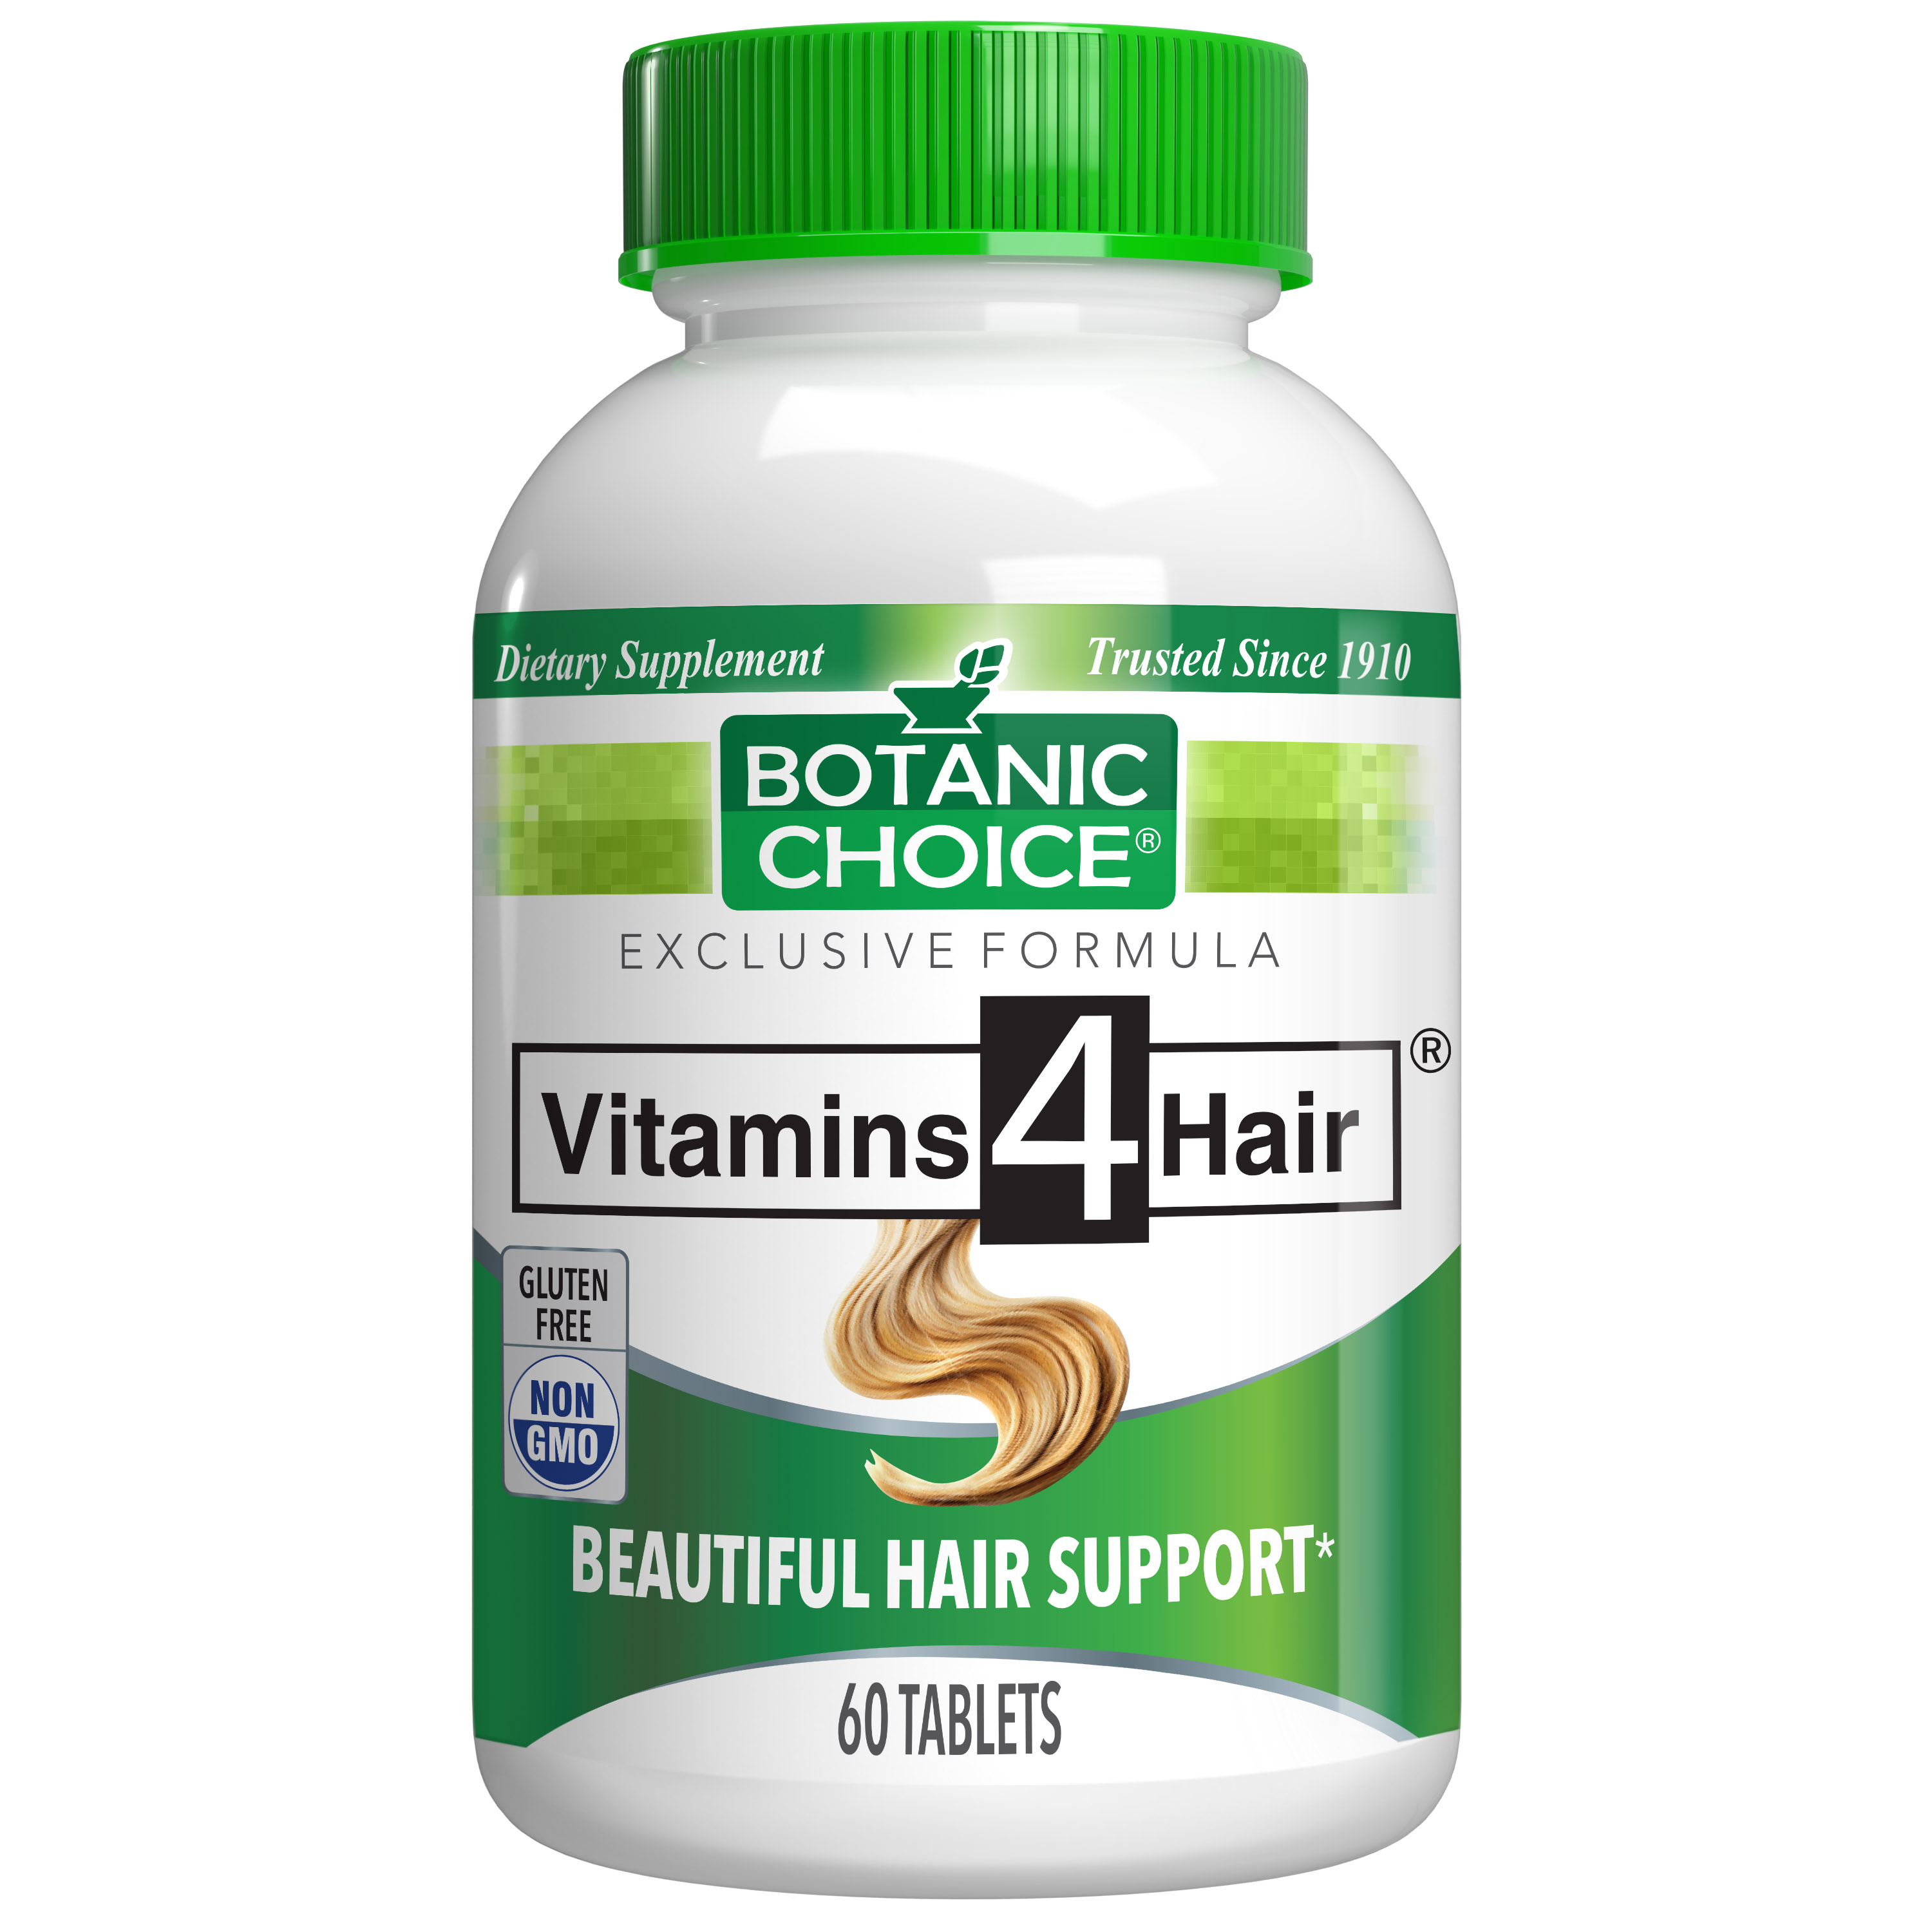 Botanic Choice Vitamins 4 Hair® - Youthful Hair Support Supplement - 60 Tablets